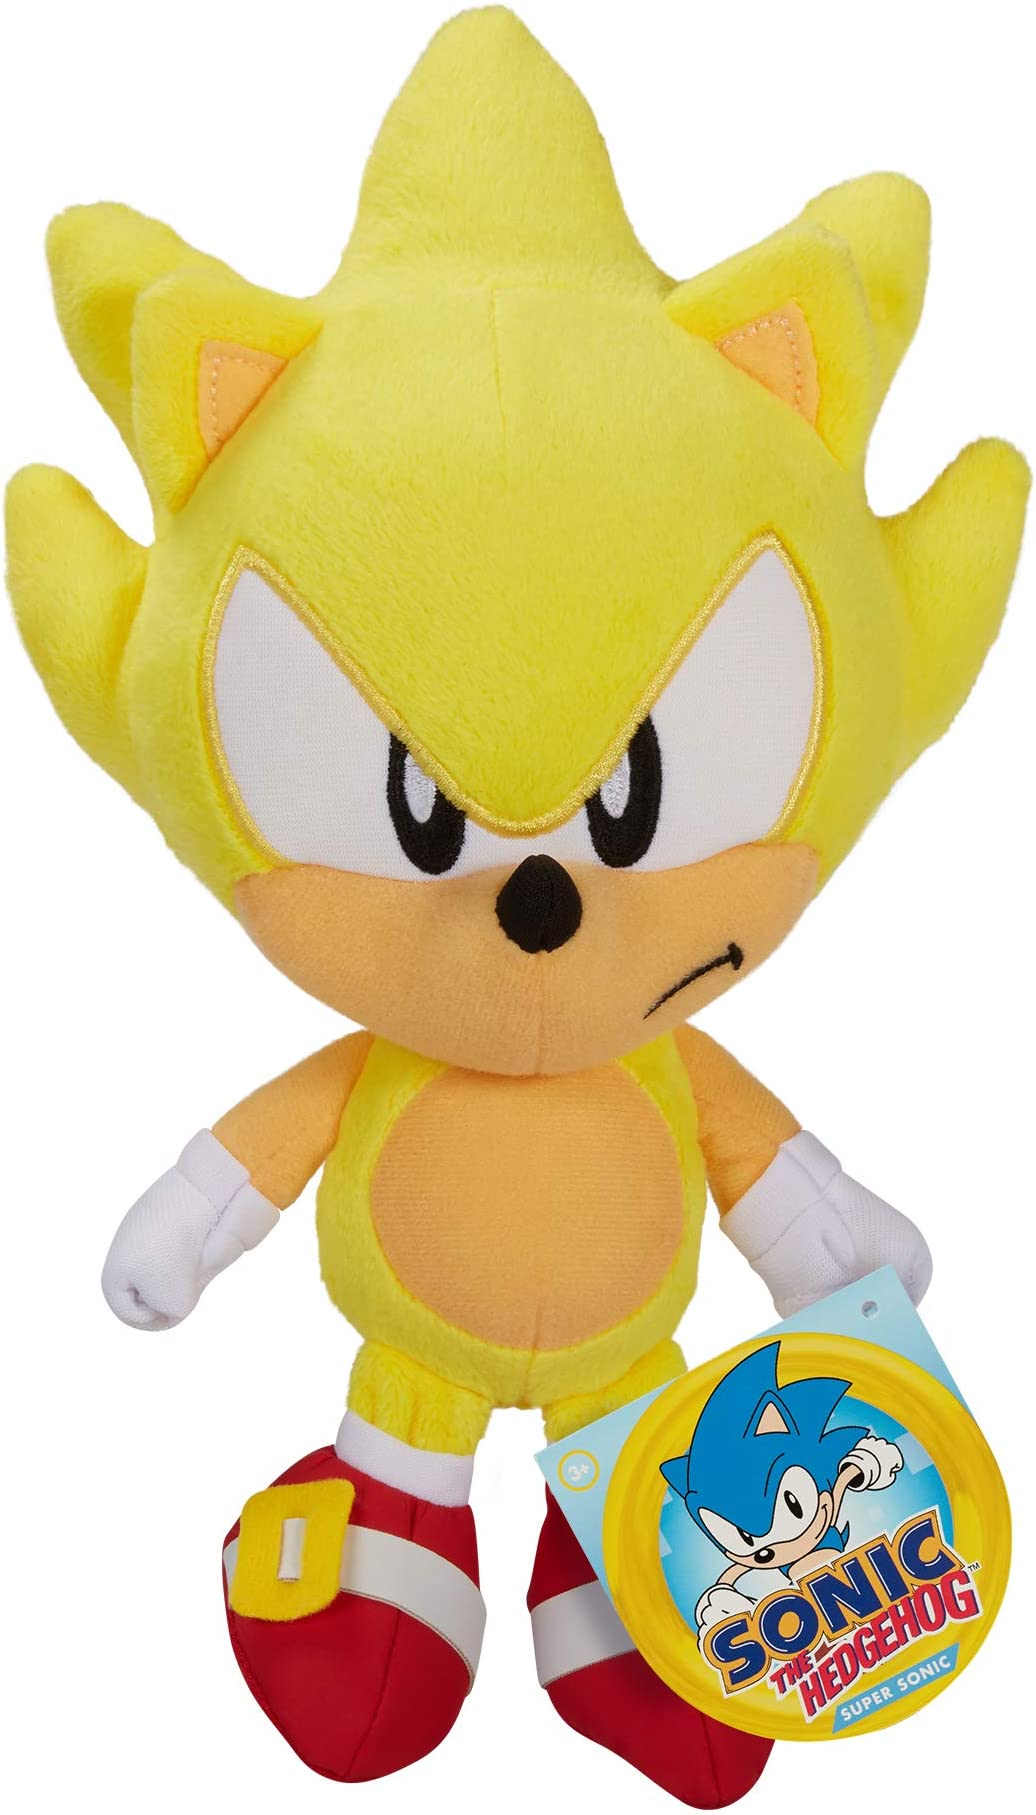 New With Tags Sonic The Hedgehog MIGHTY Plush Jakks Stuffed Toy